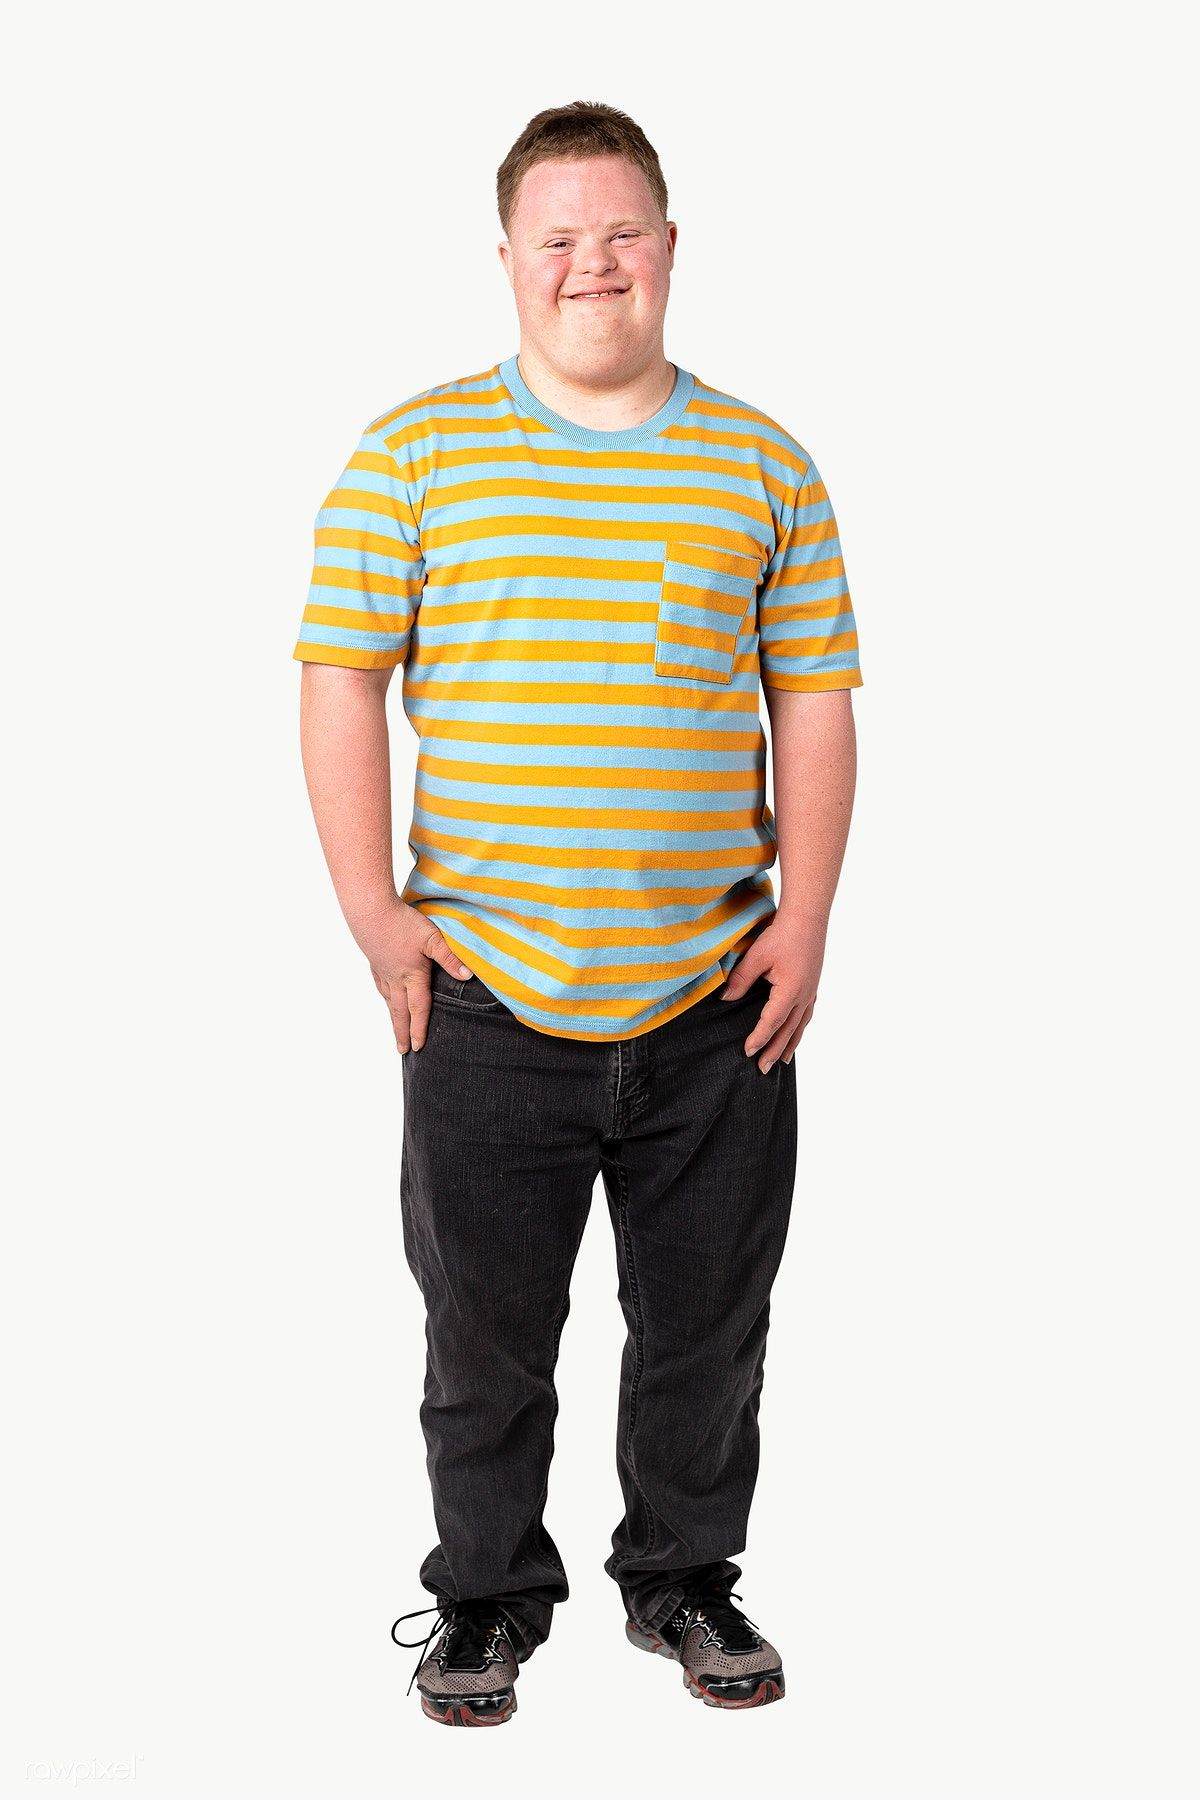 Download Premium Png Of Cute Boy With Down Syndrome 2319732 Cute Boys Down Syndrome Long Sleeve Tshirt Men